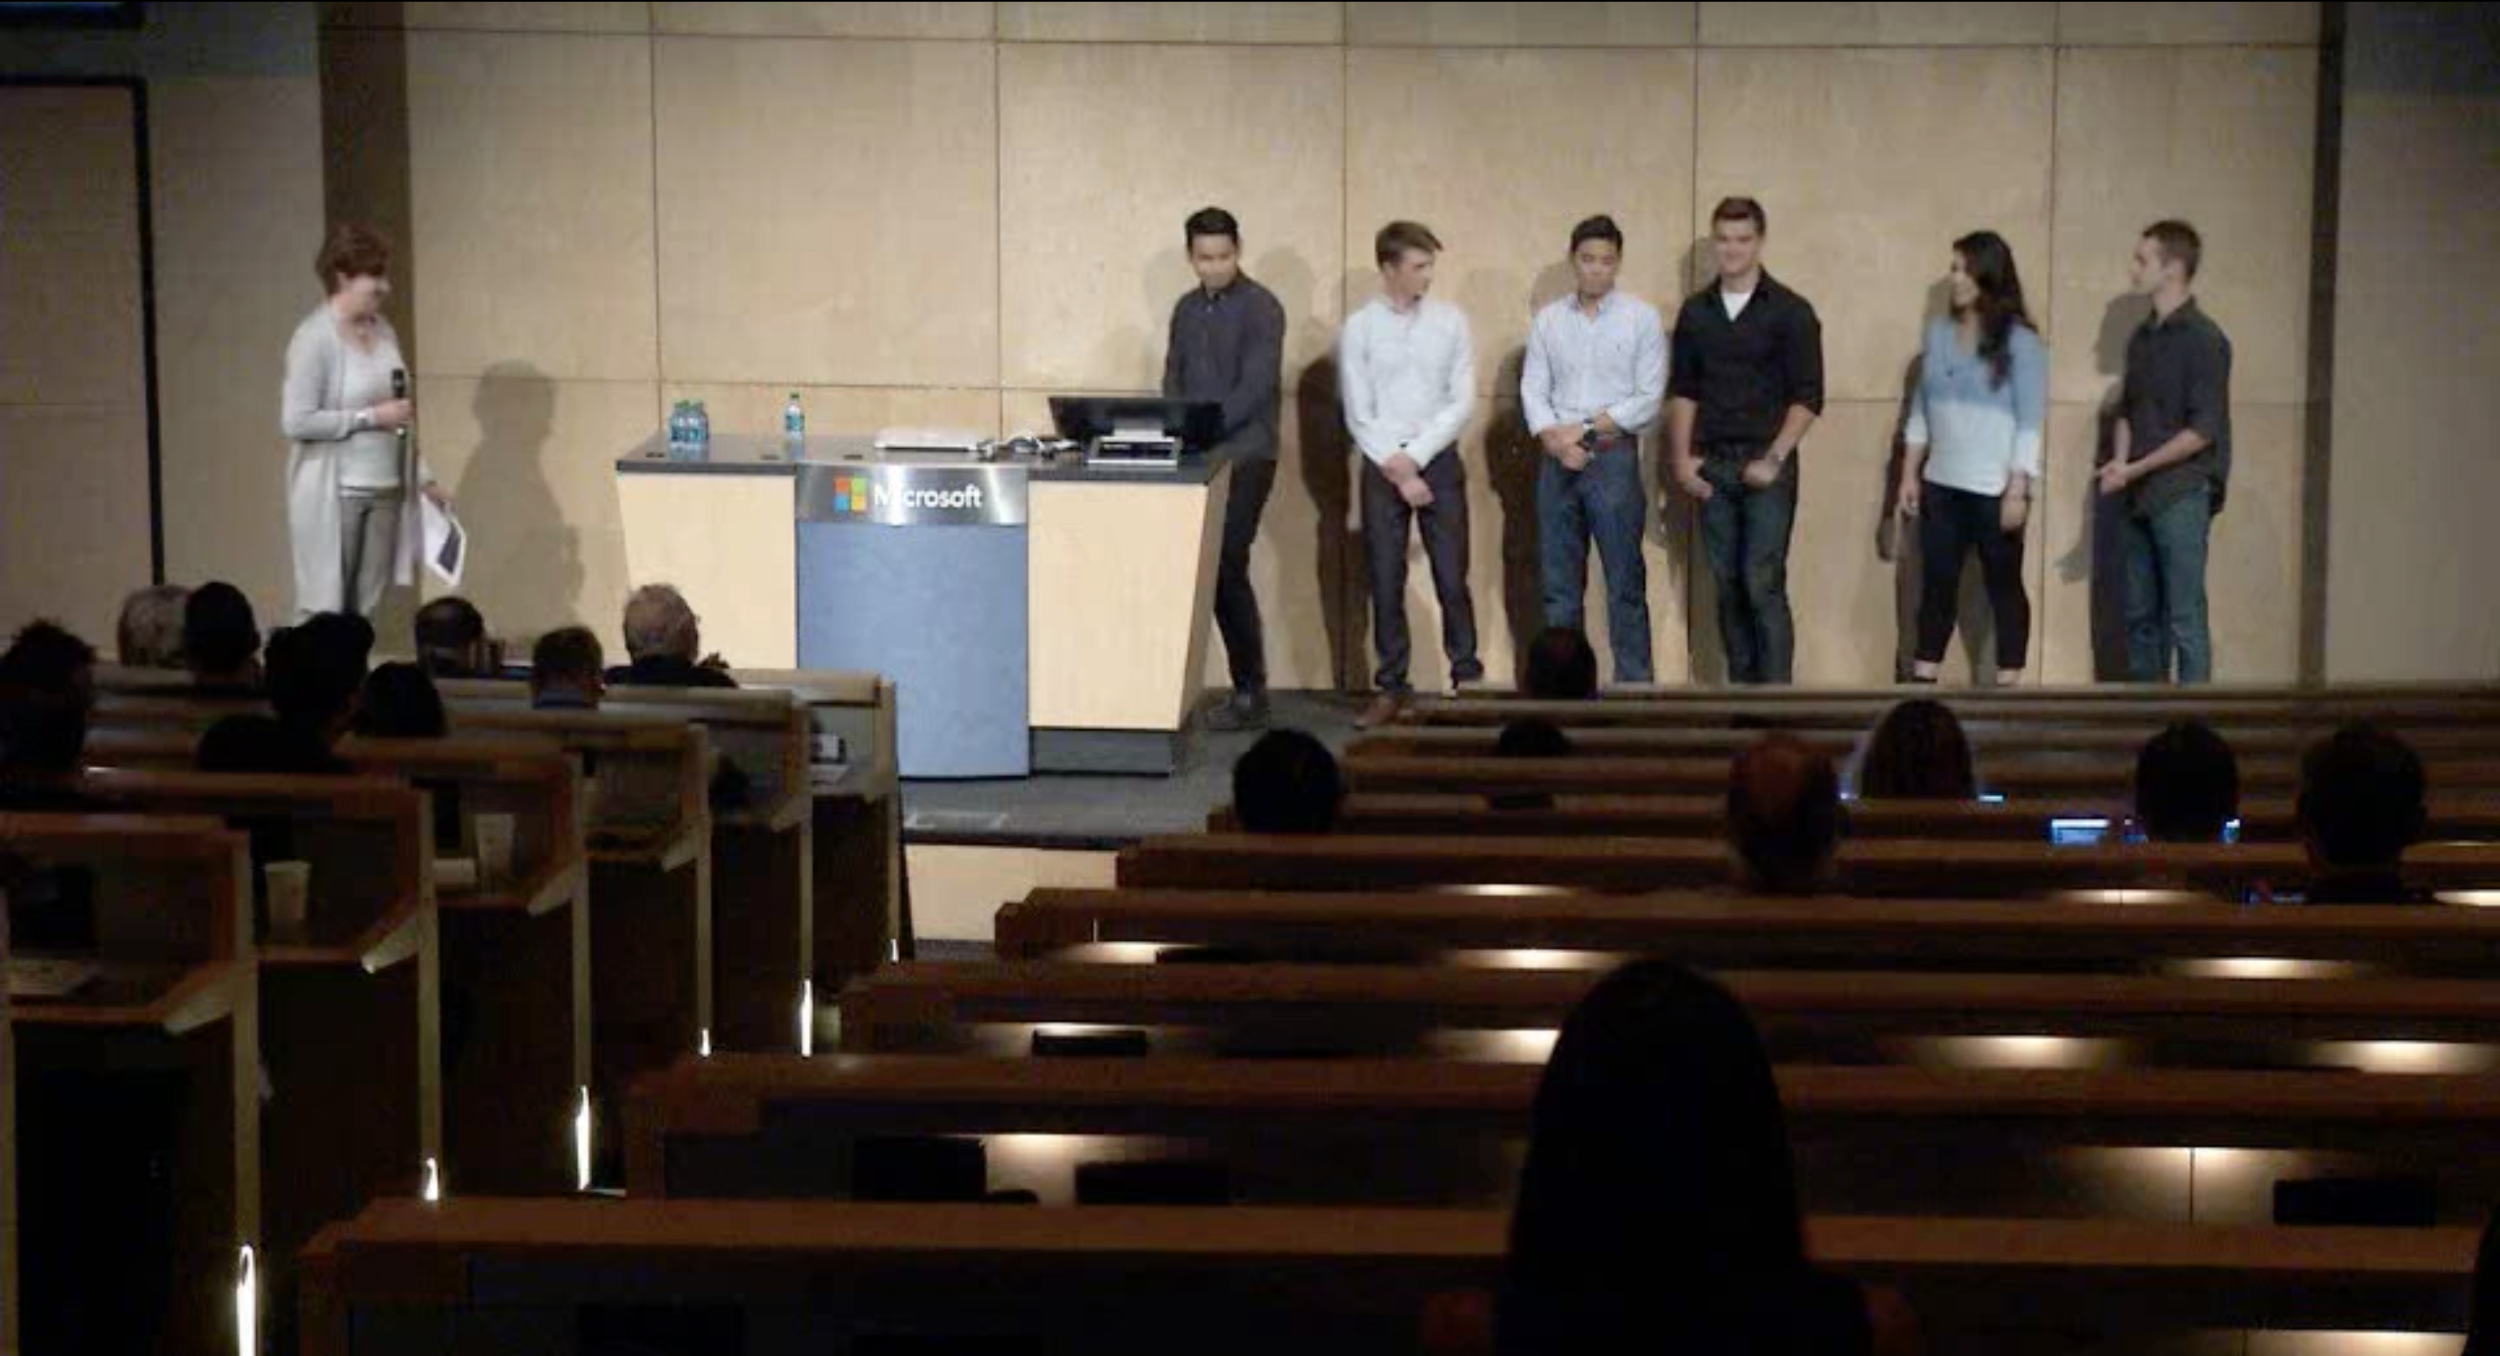 Check out our full Microsoft Expo presentation  here!